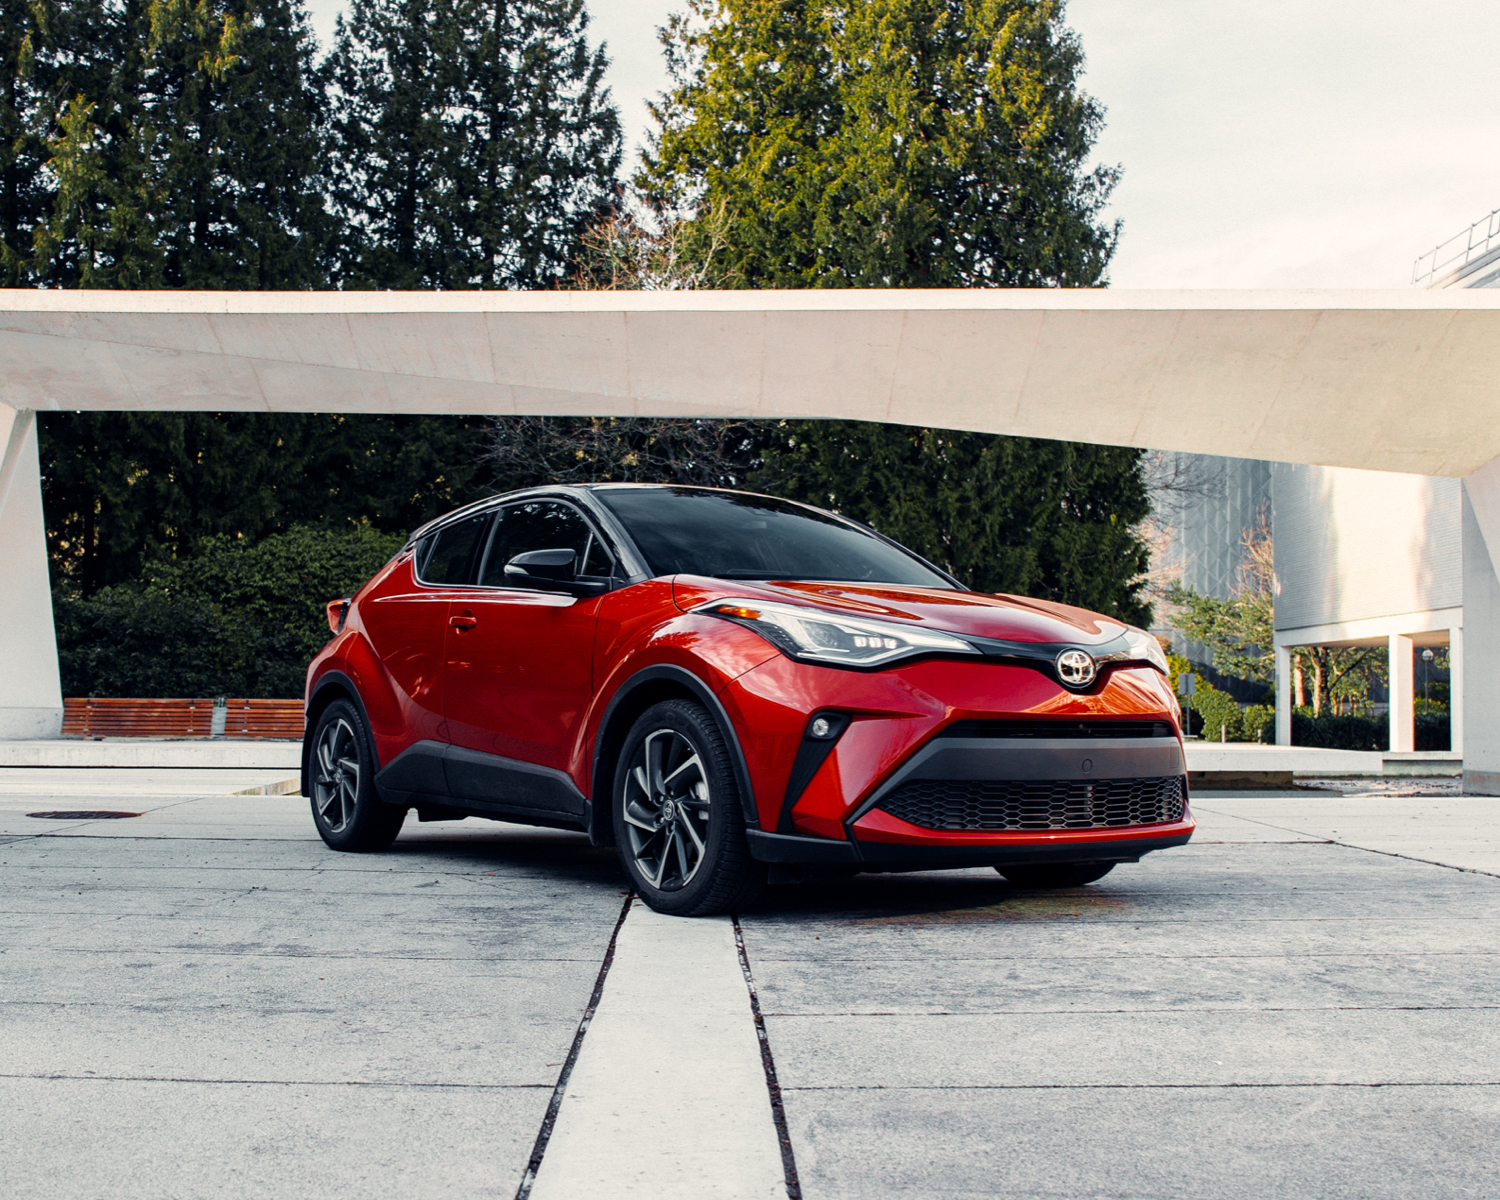 C-HR Limited shown in Supersonic Red